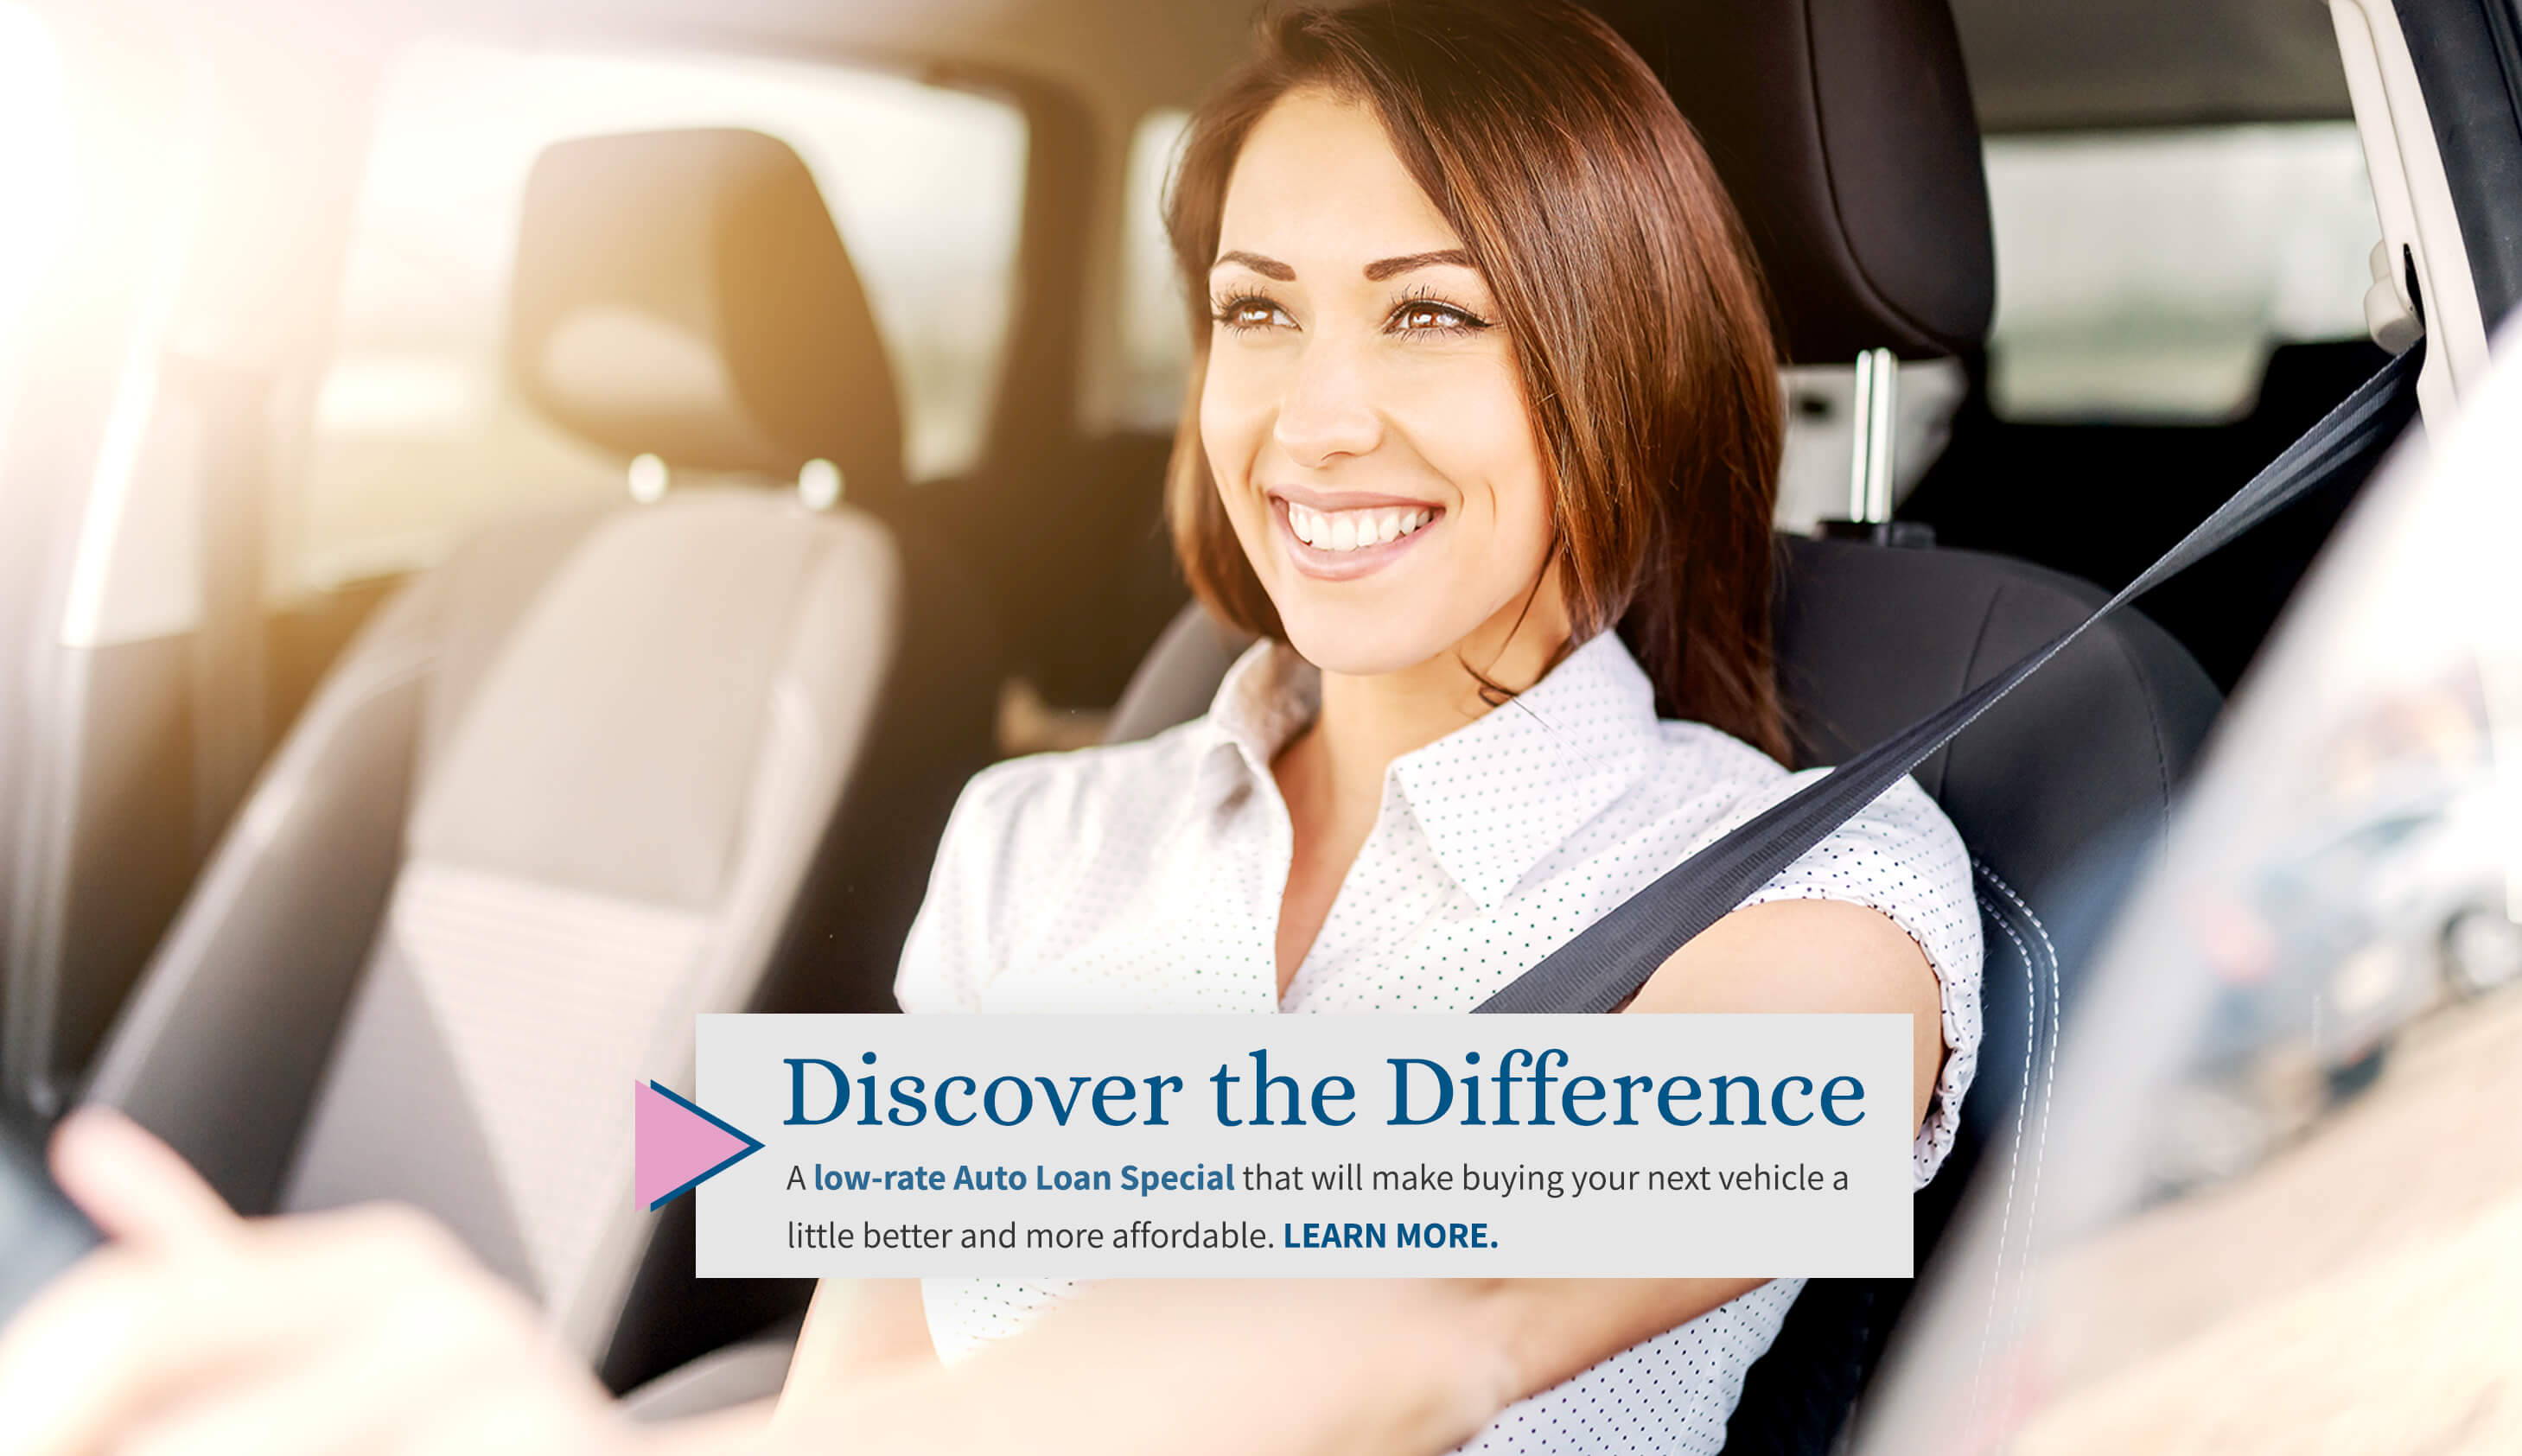 Discover the Difference. A low-rate Auto Loan Special that will make buying your next vehicle a little better and more affordable.